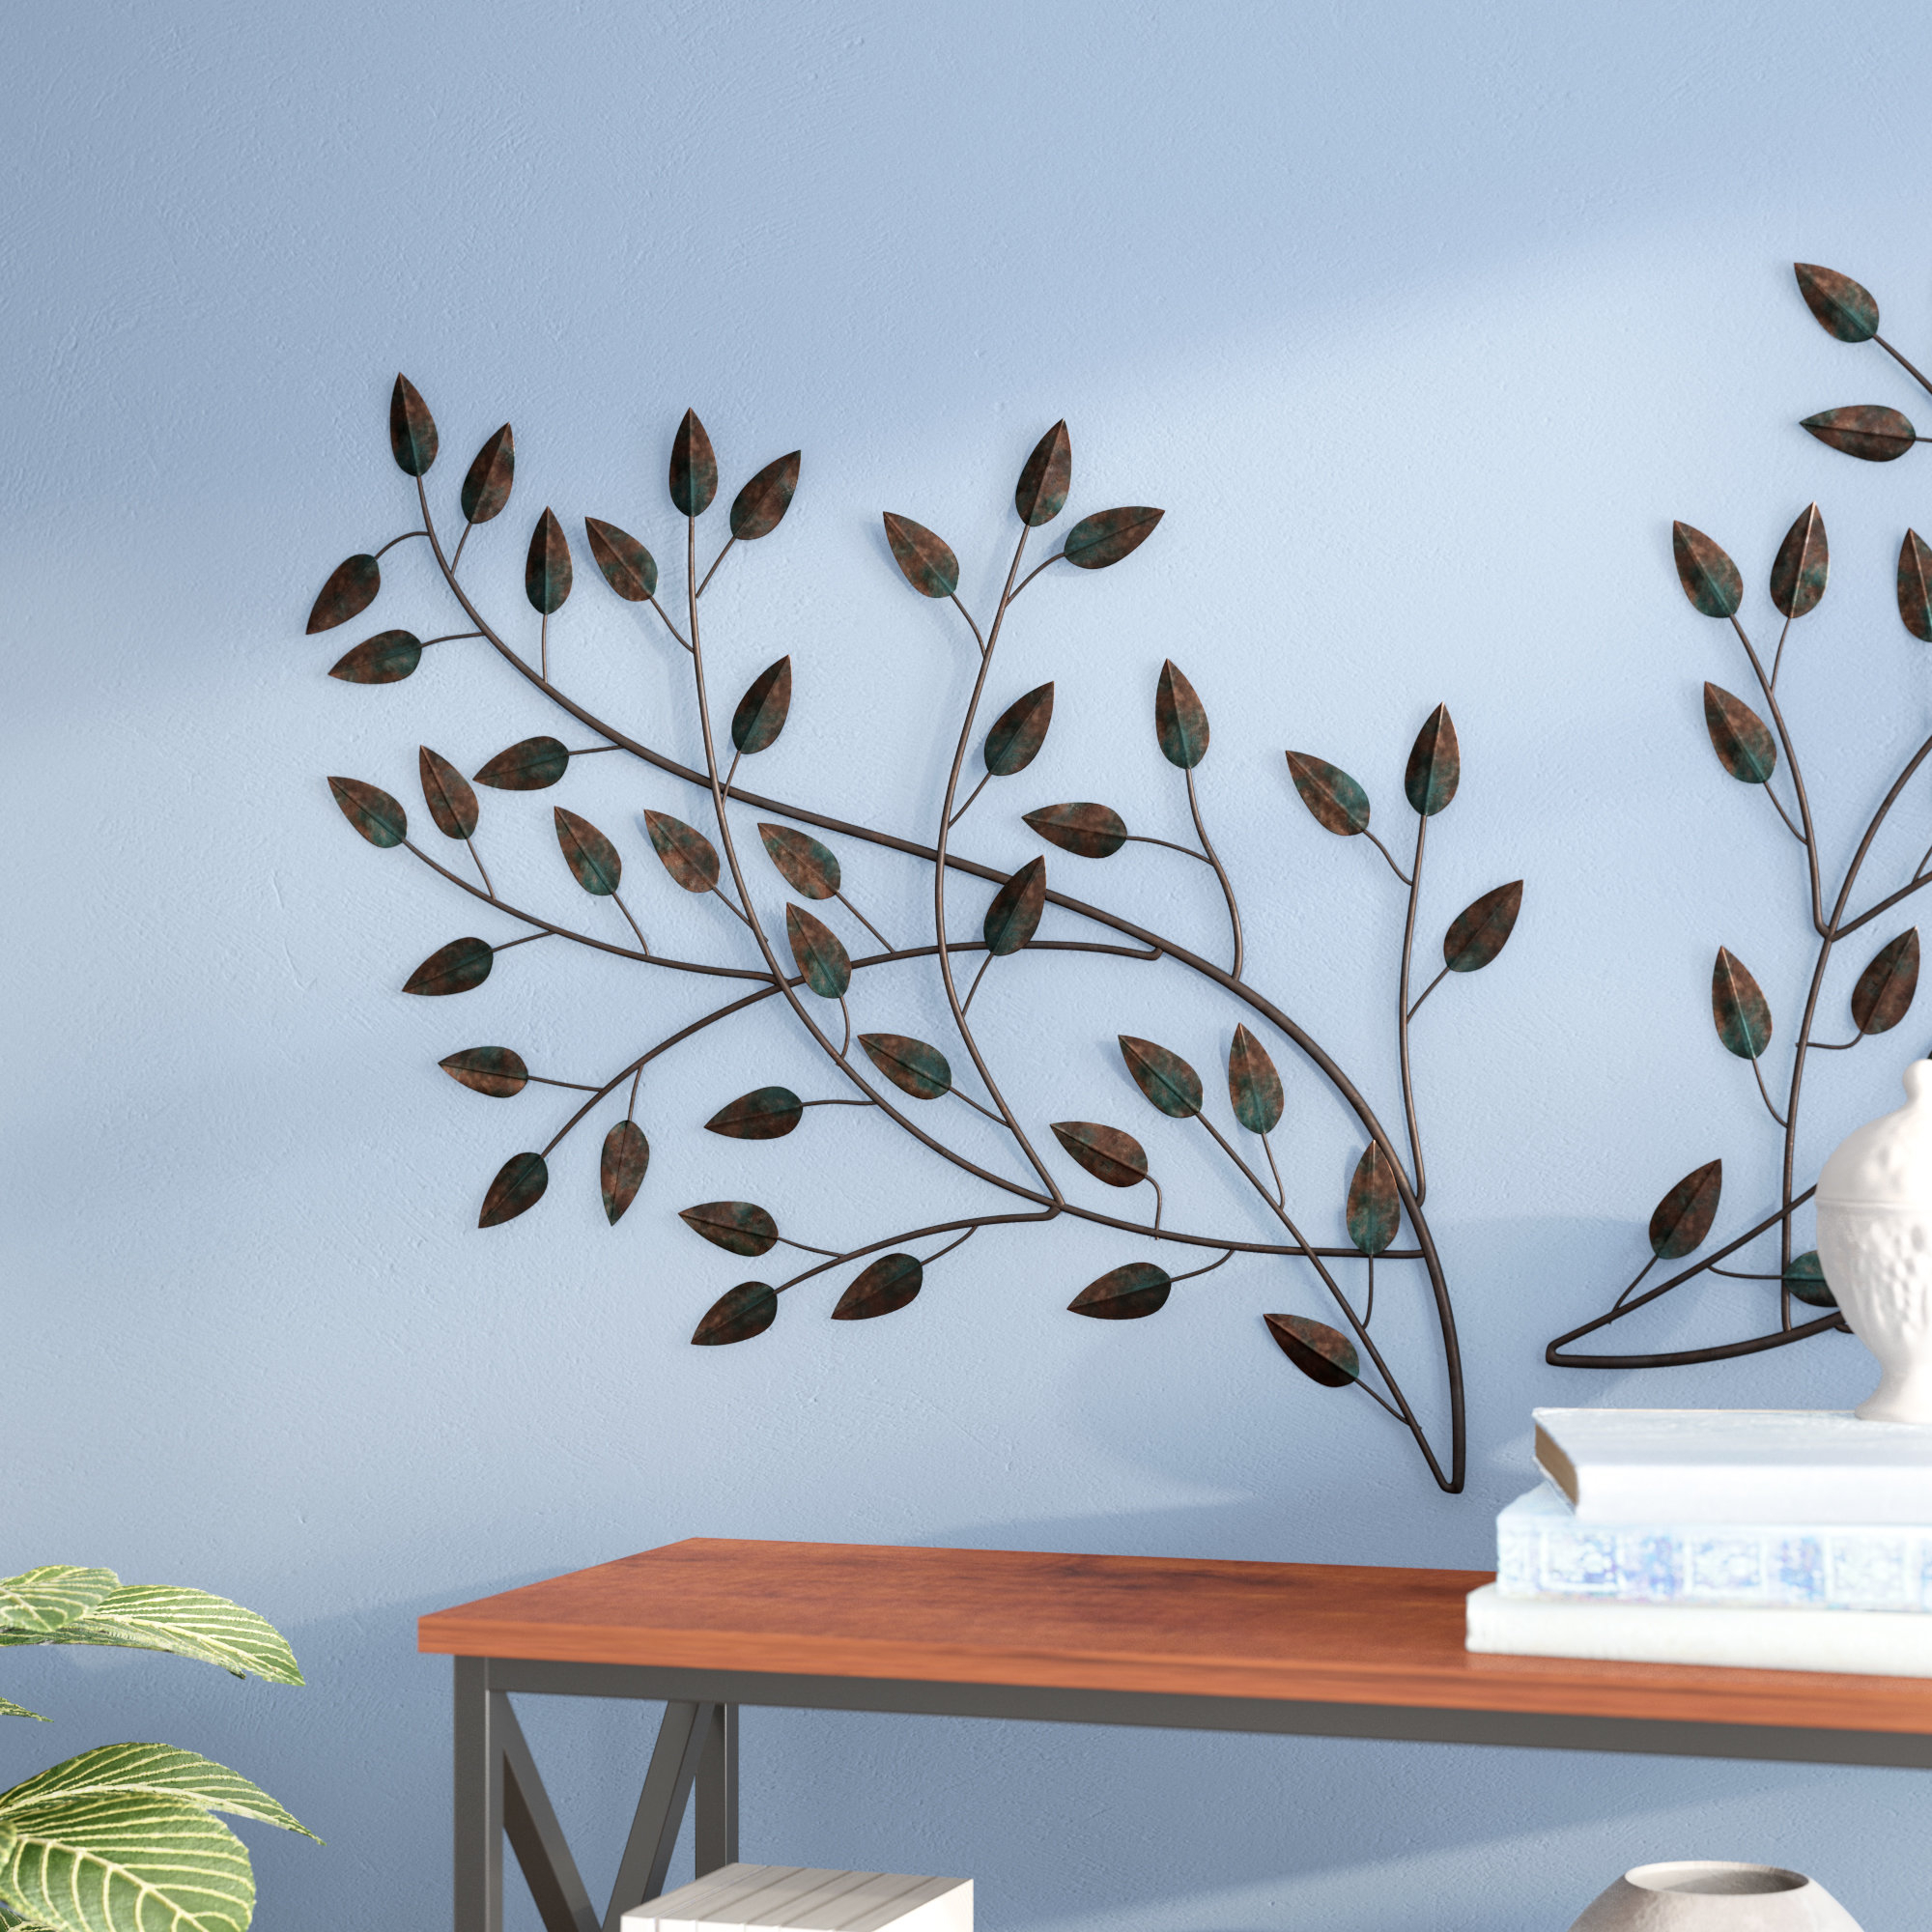 Blowing Leaves Wall Décor Throughout Famous Desford Leaf Wall Decor By Charlton Home (View 3 of 20)